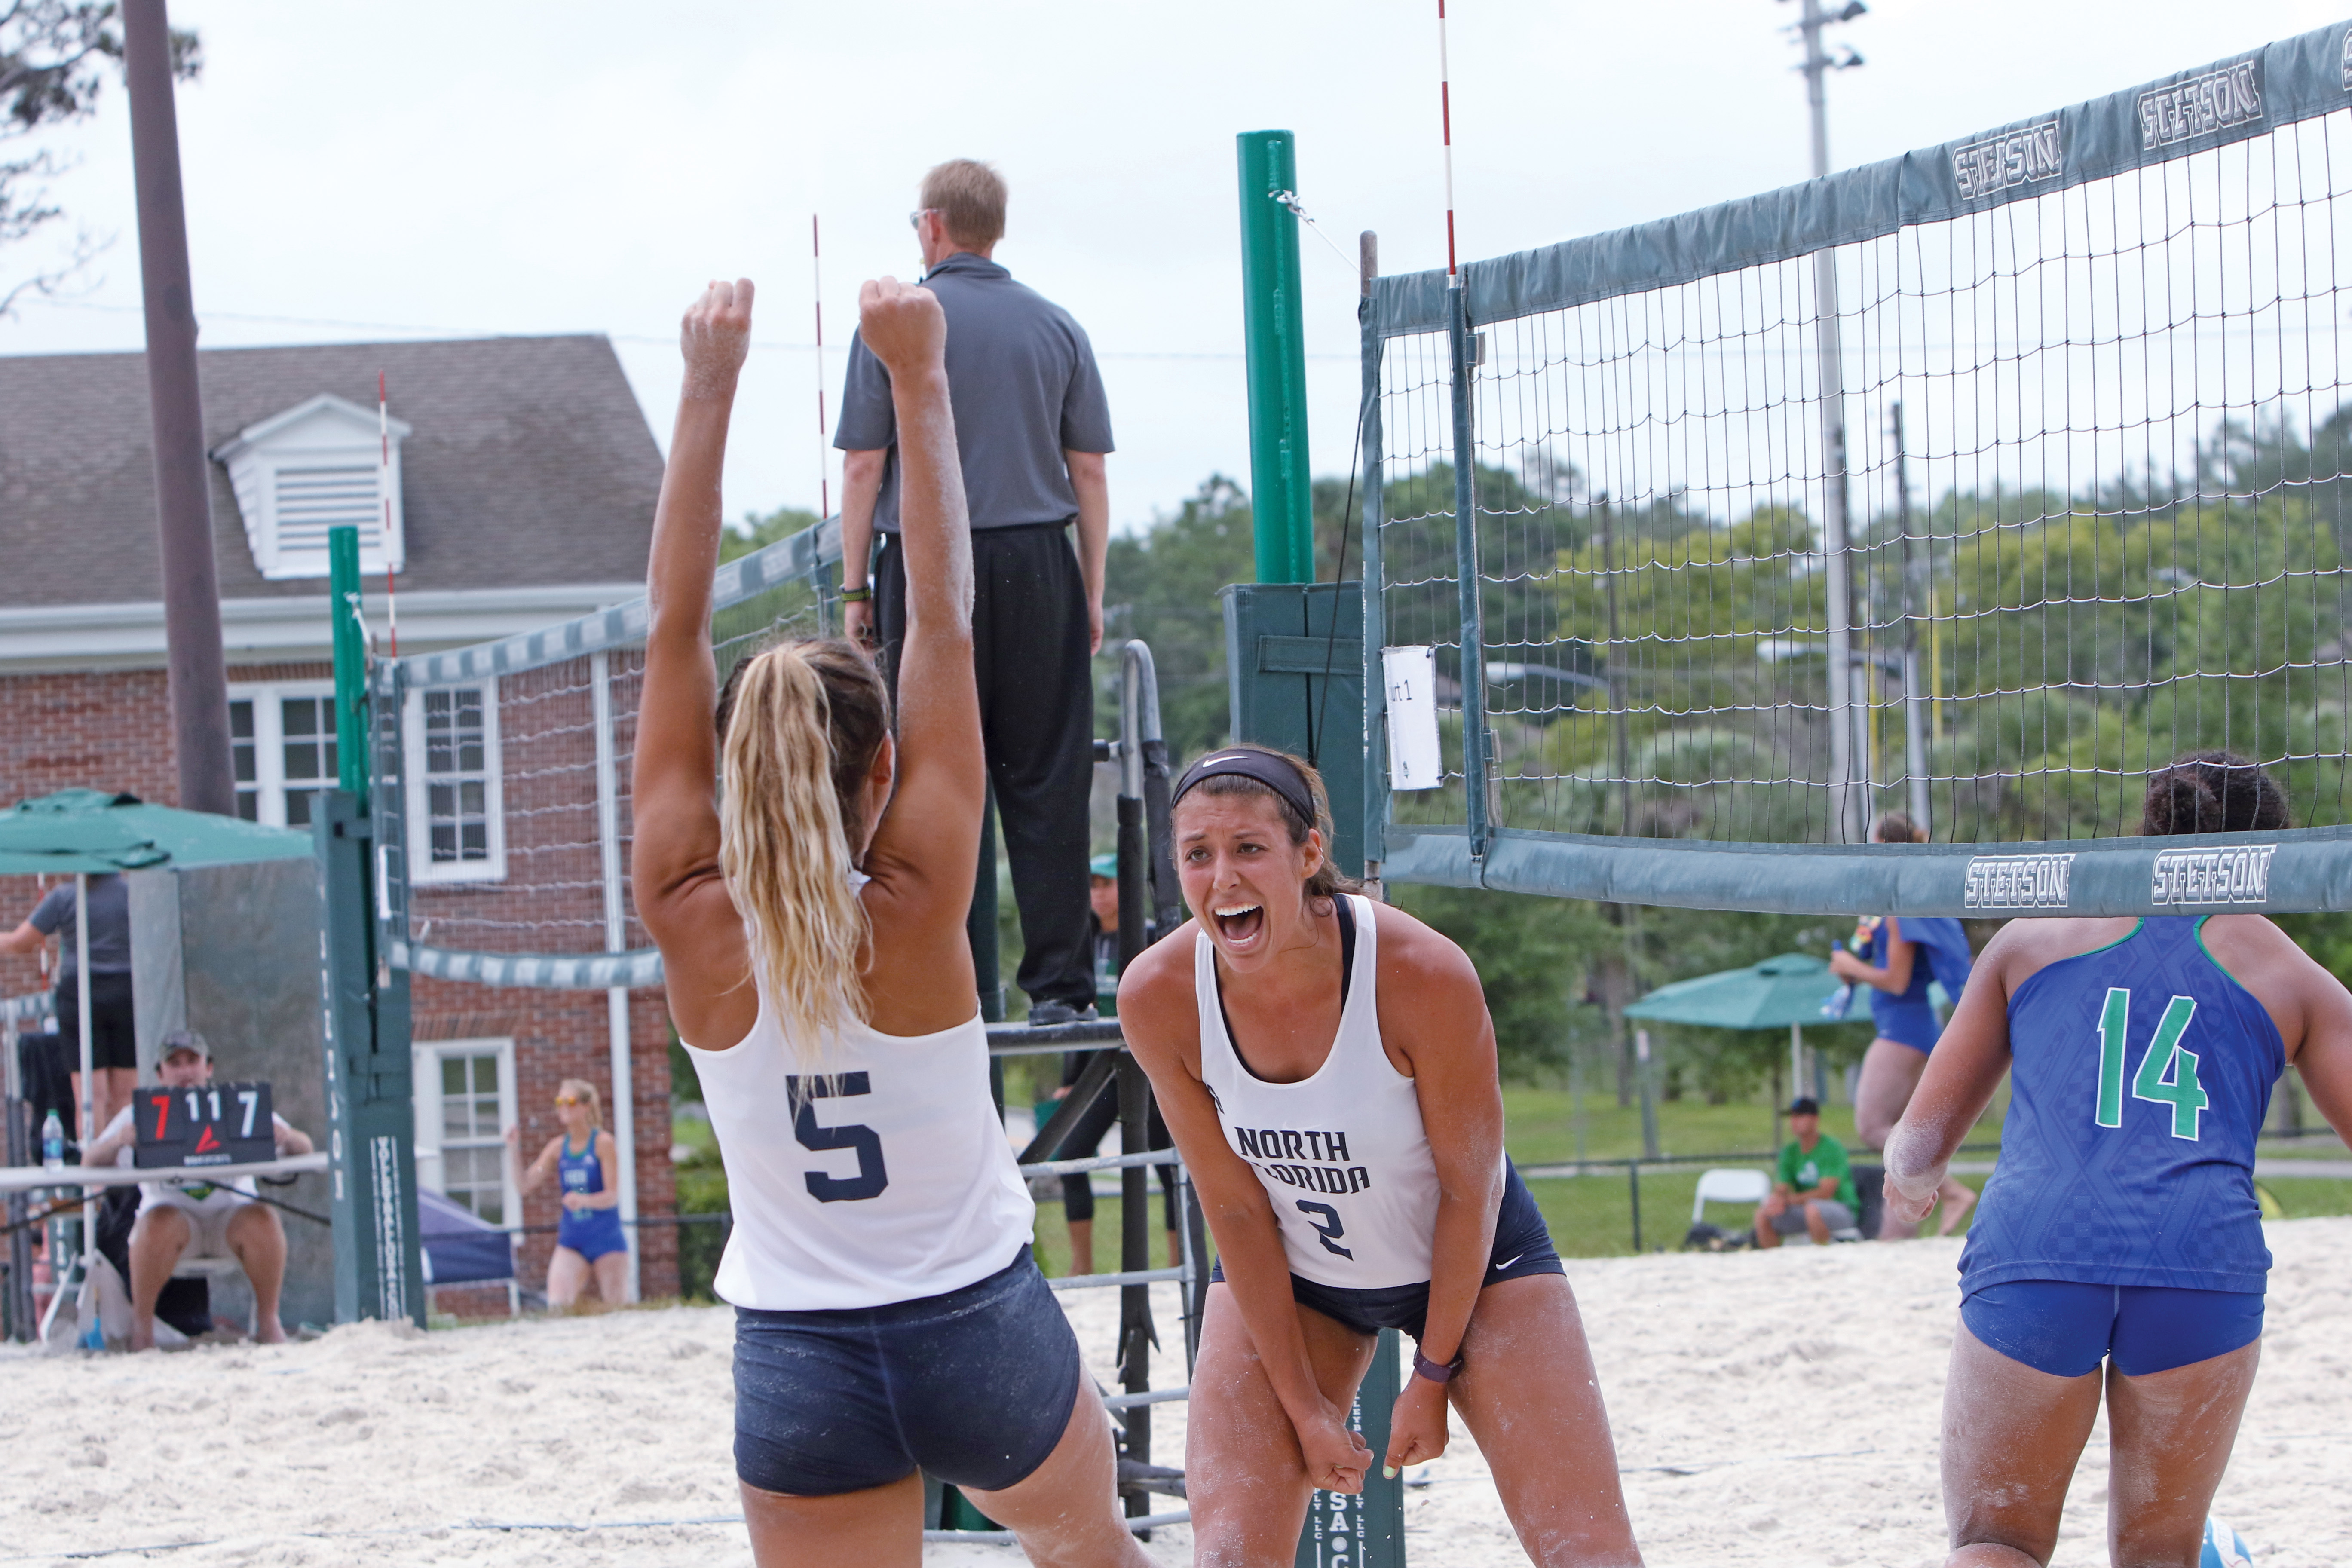 UNF beach volleyball players celebrate a point during a game